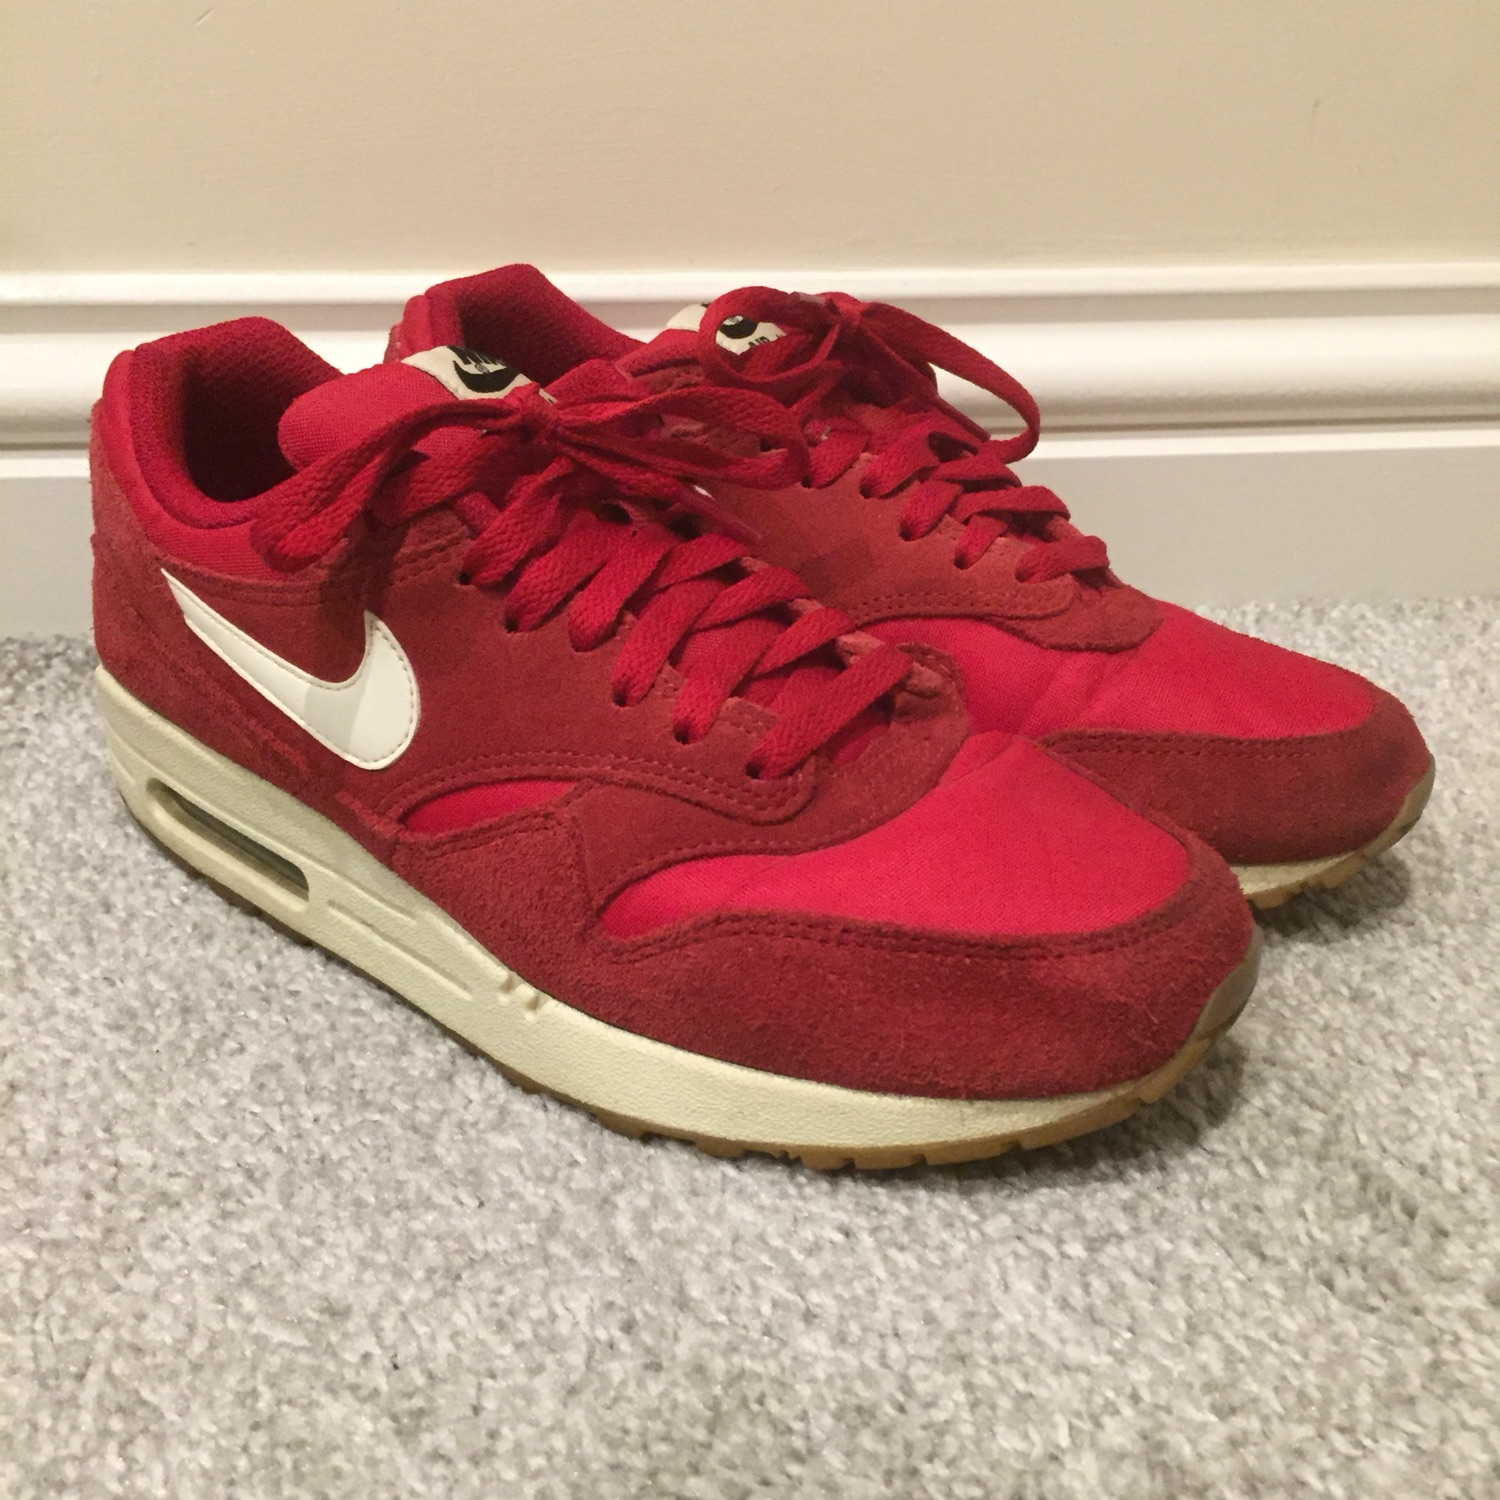 Air Max 1 Red Suede